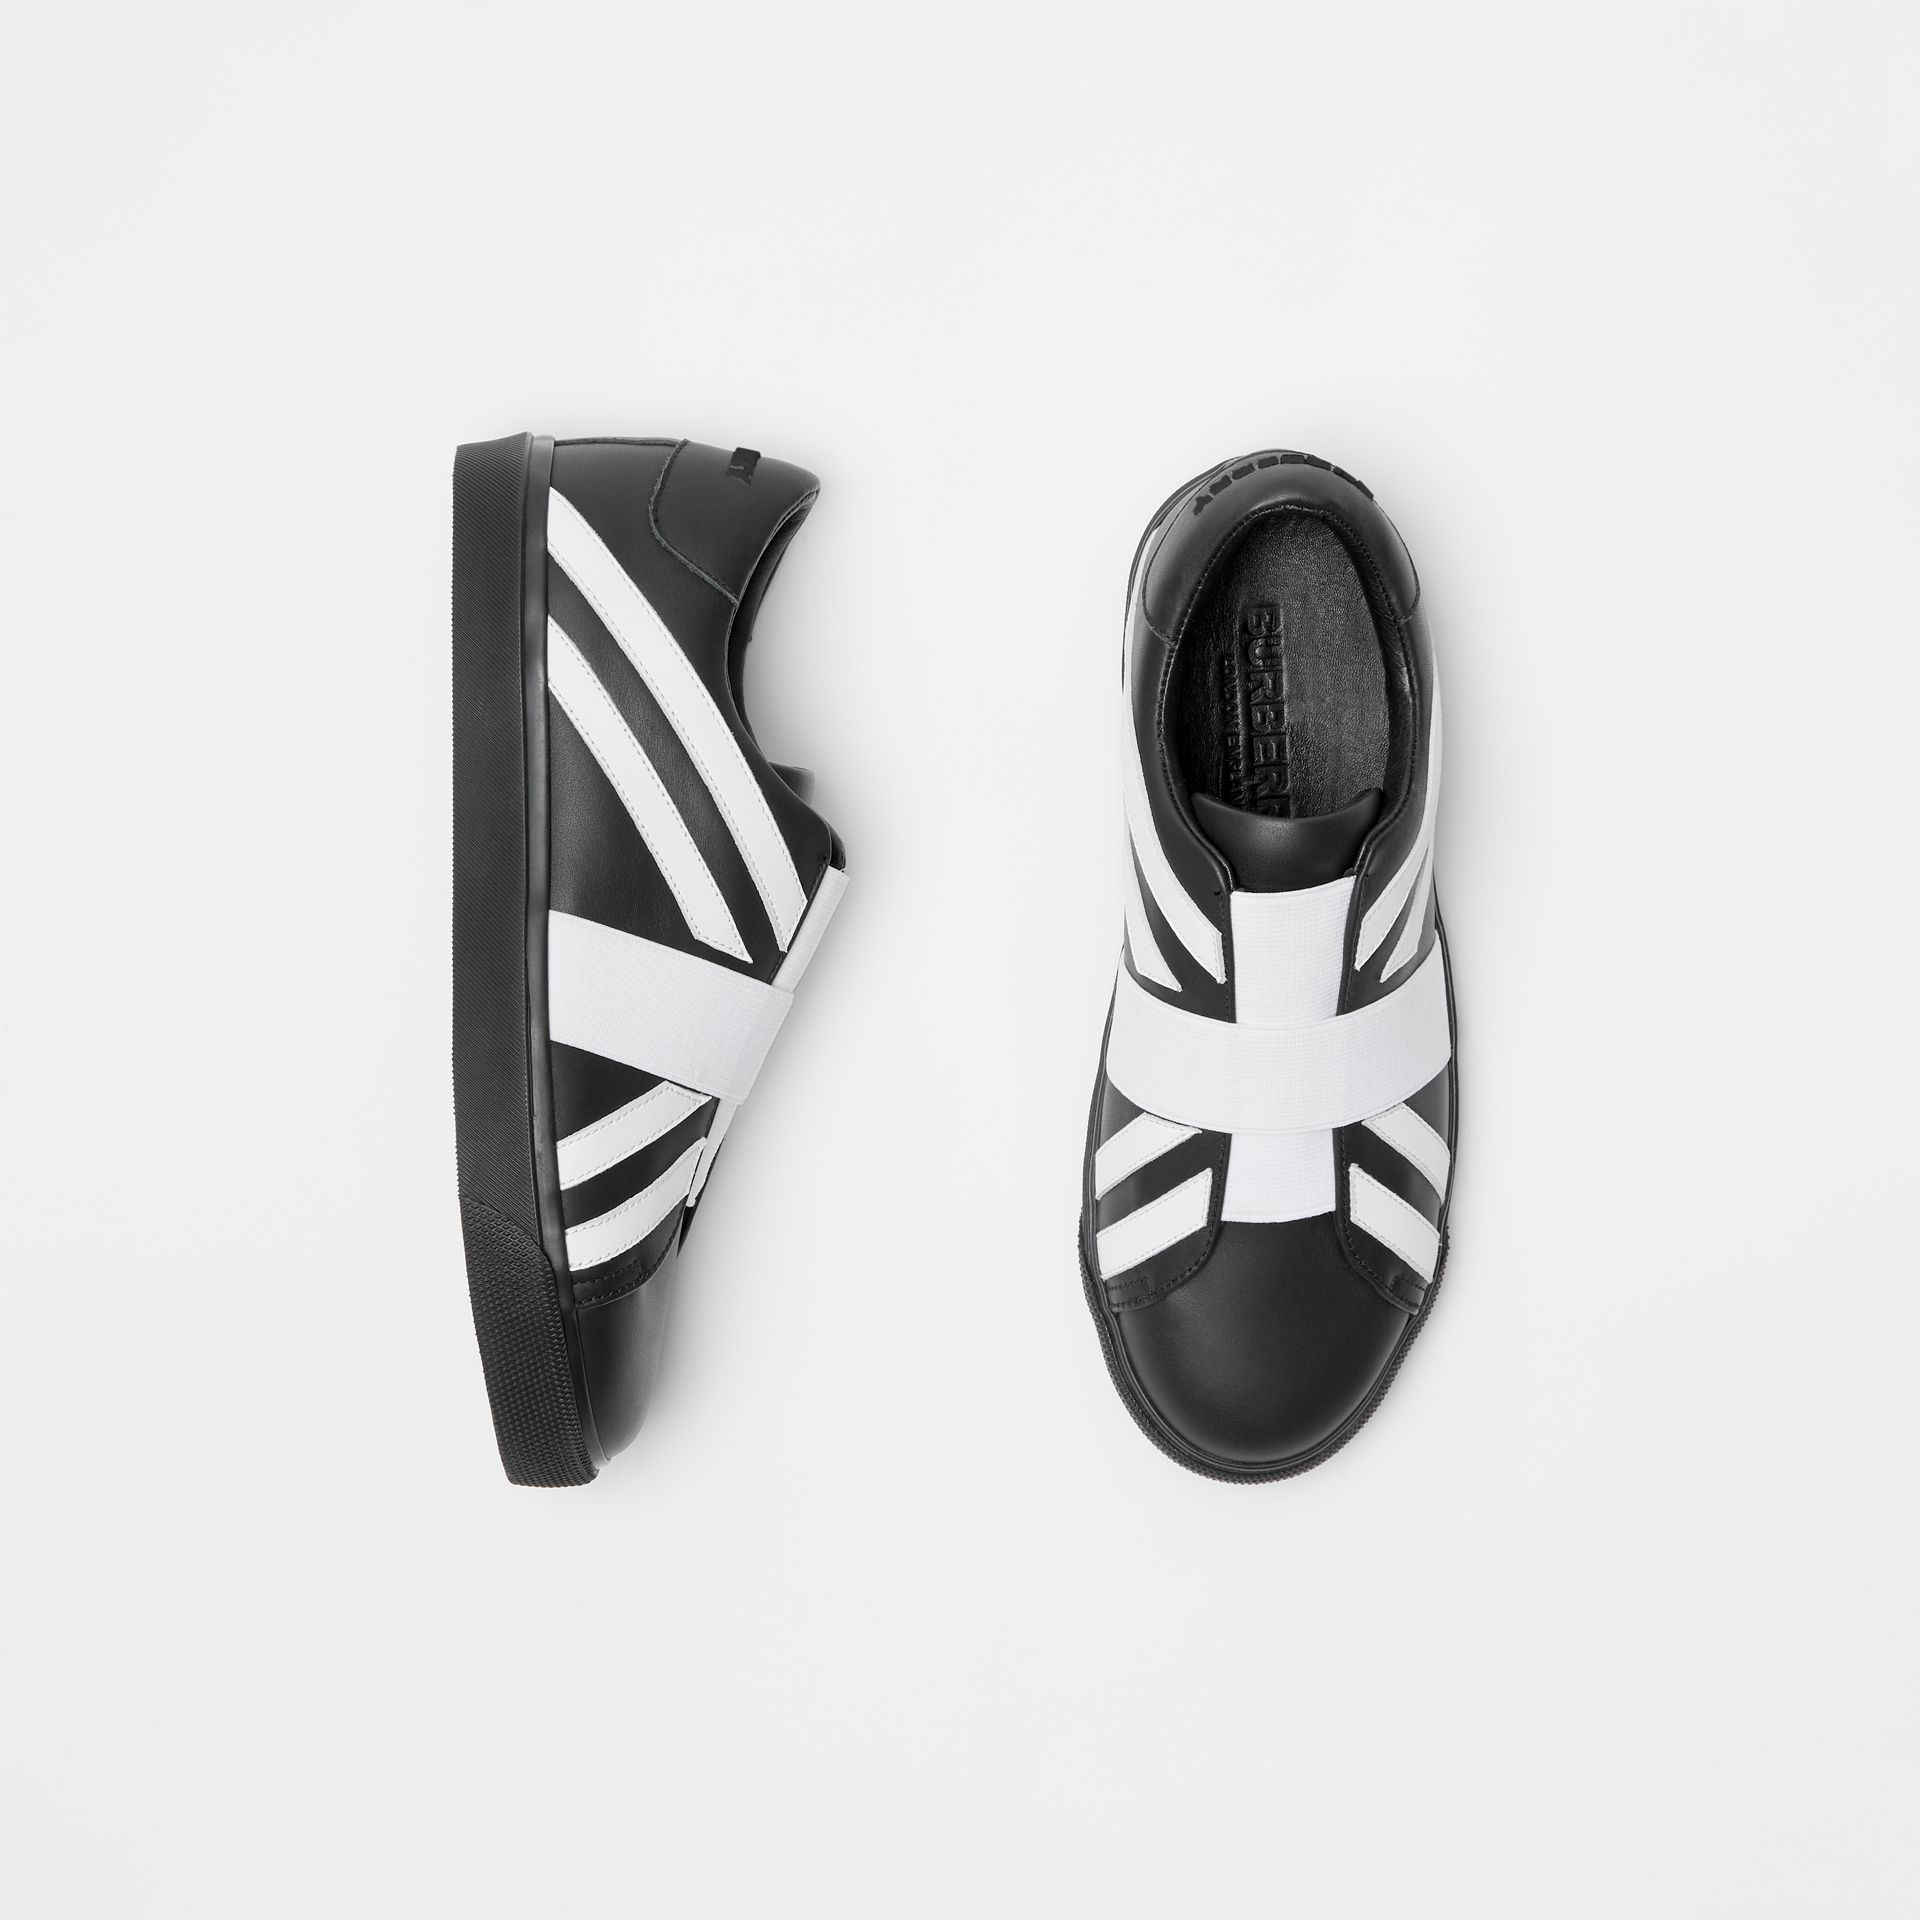 Sneakers sans lacets à motif Union Jack (Noir/blanc Optique) - Femme | Burberry - photo de la galerie 0